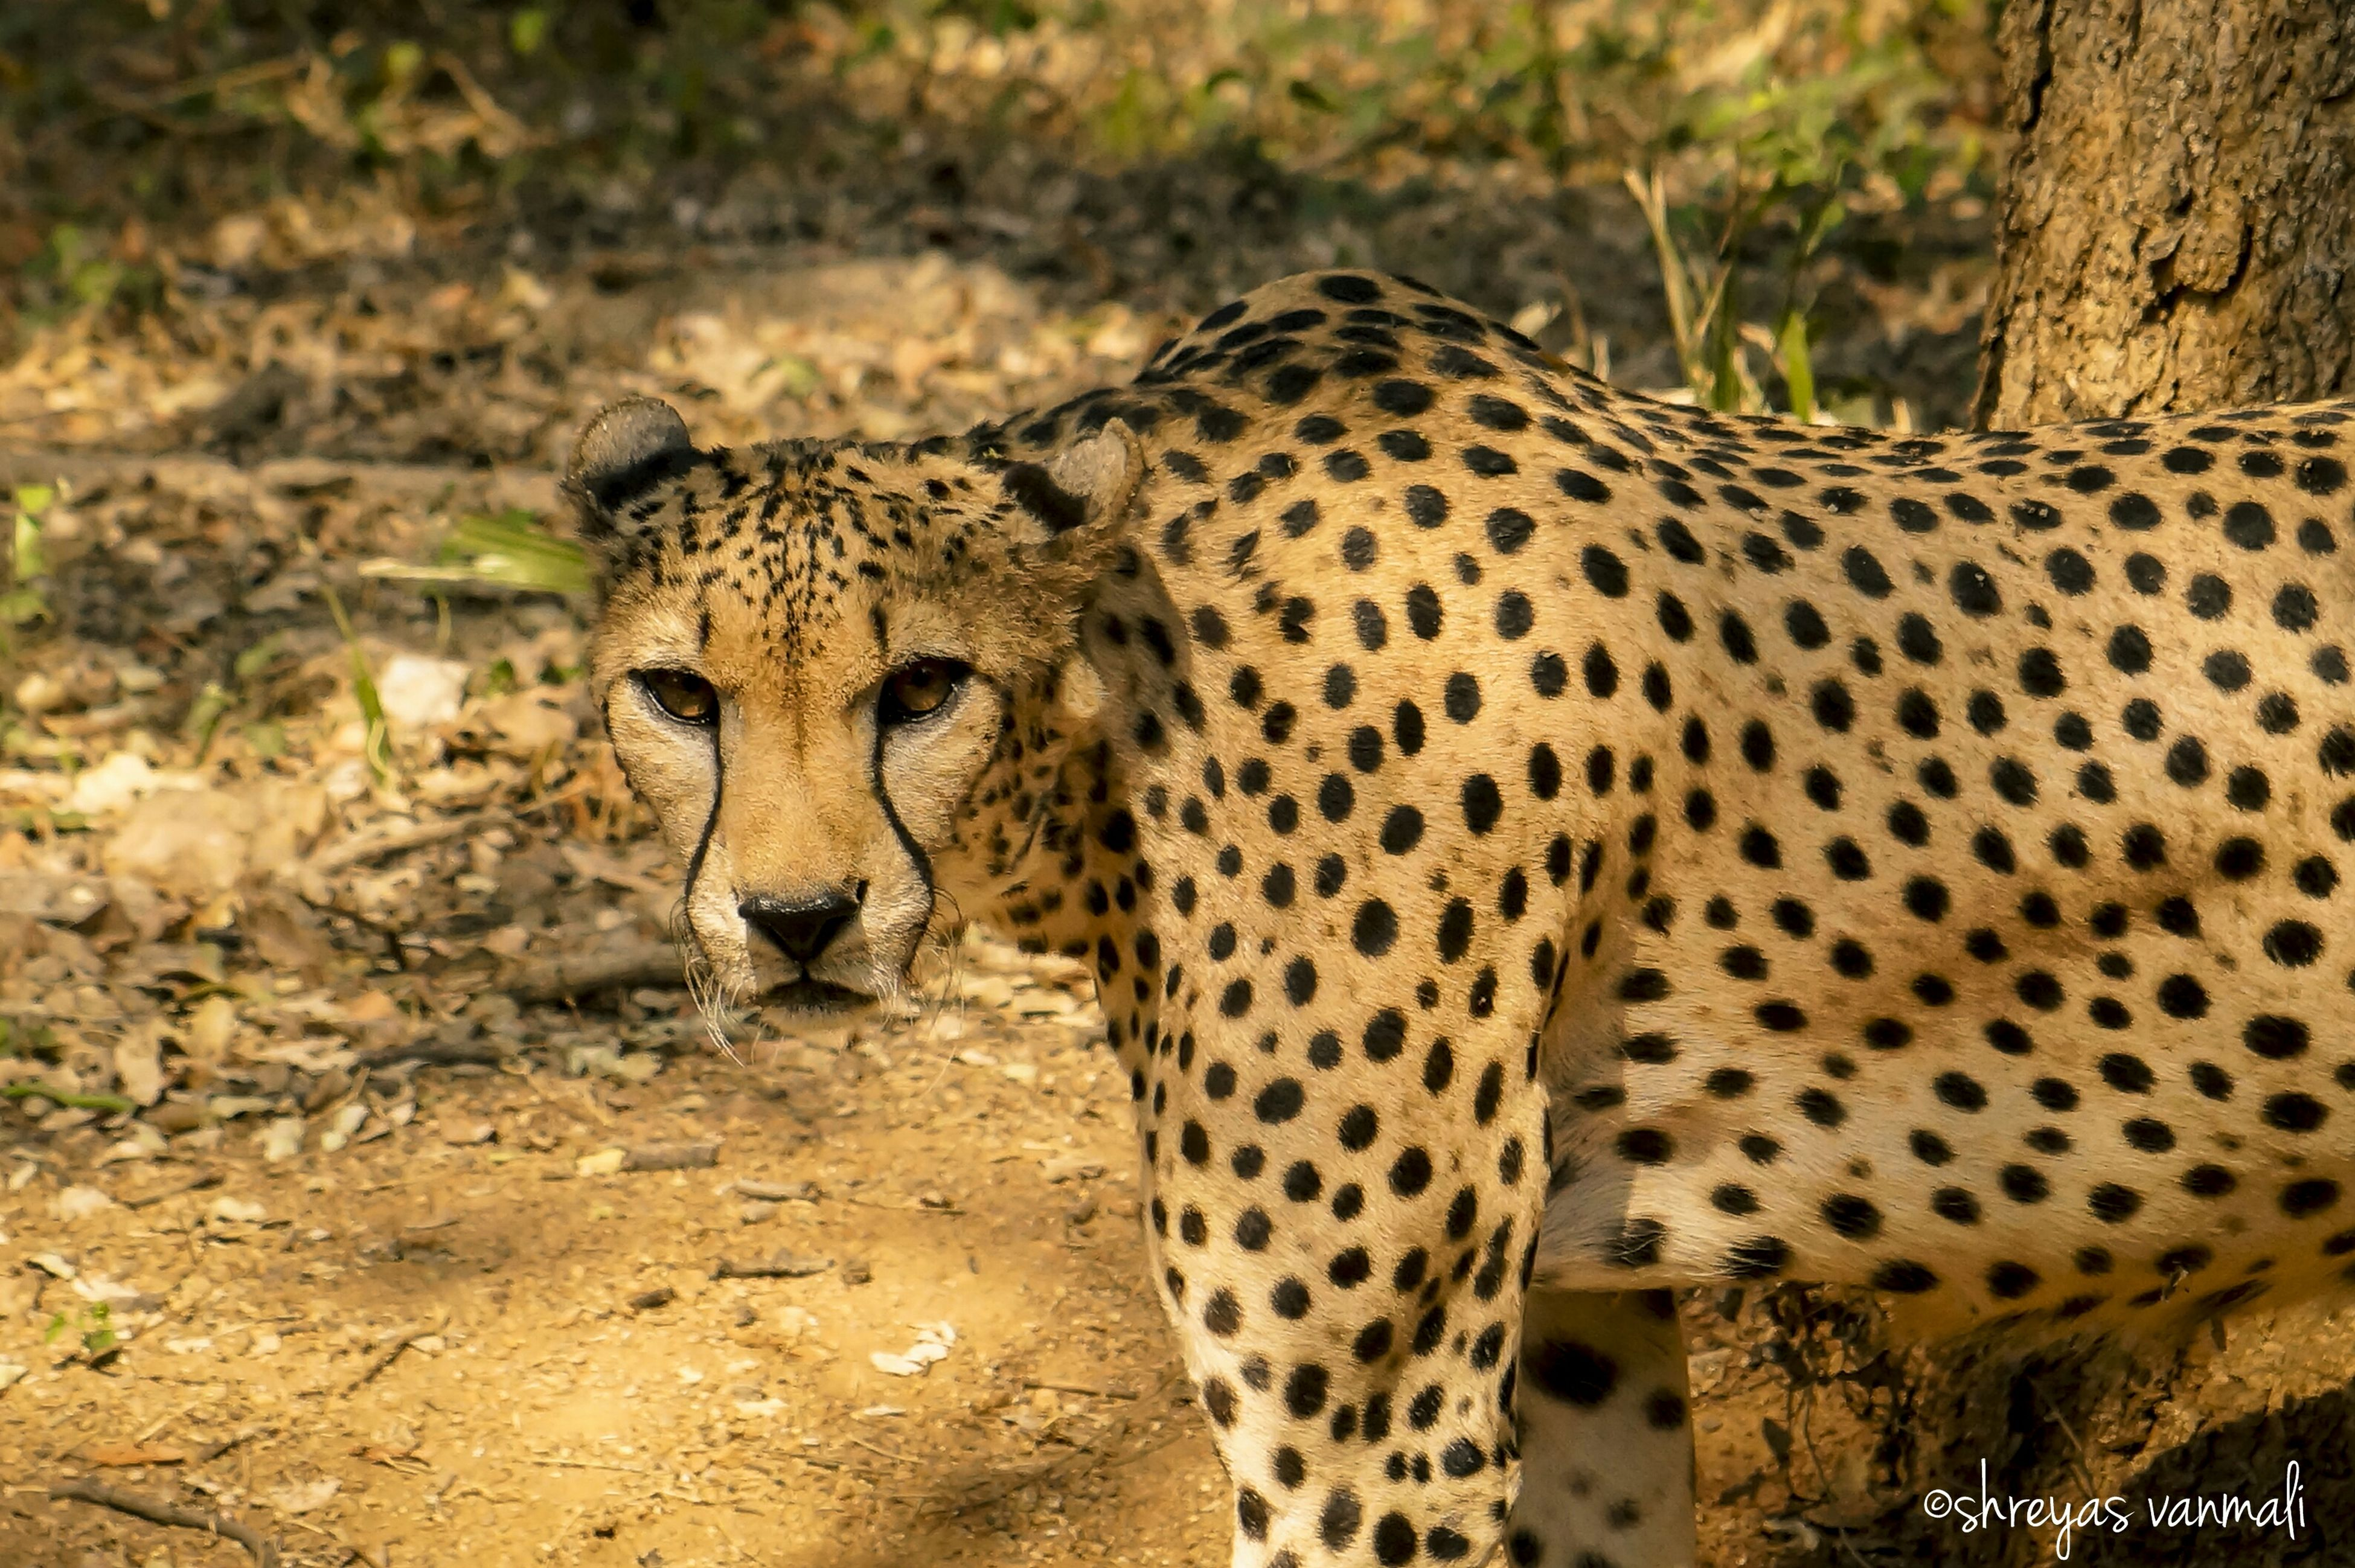 animal themes, animals in the wild, wildlife, one animal, mammal, safari animals, animal markings, zoo, spotted, forest, leopard, giraffe, animals in captivity, day, cheetah, focus on foreground, natural pattern, outdoors, nature, undomesticated cat